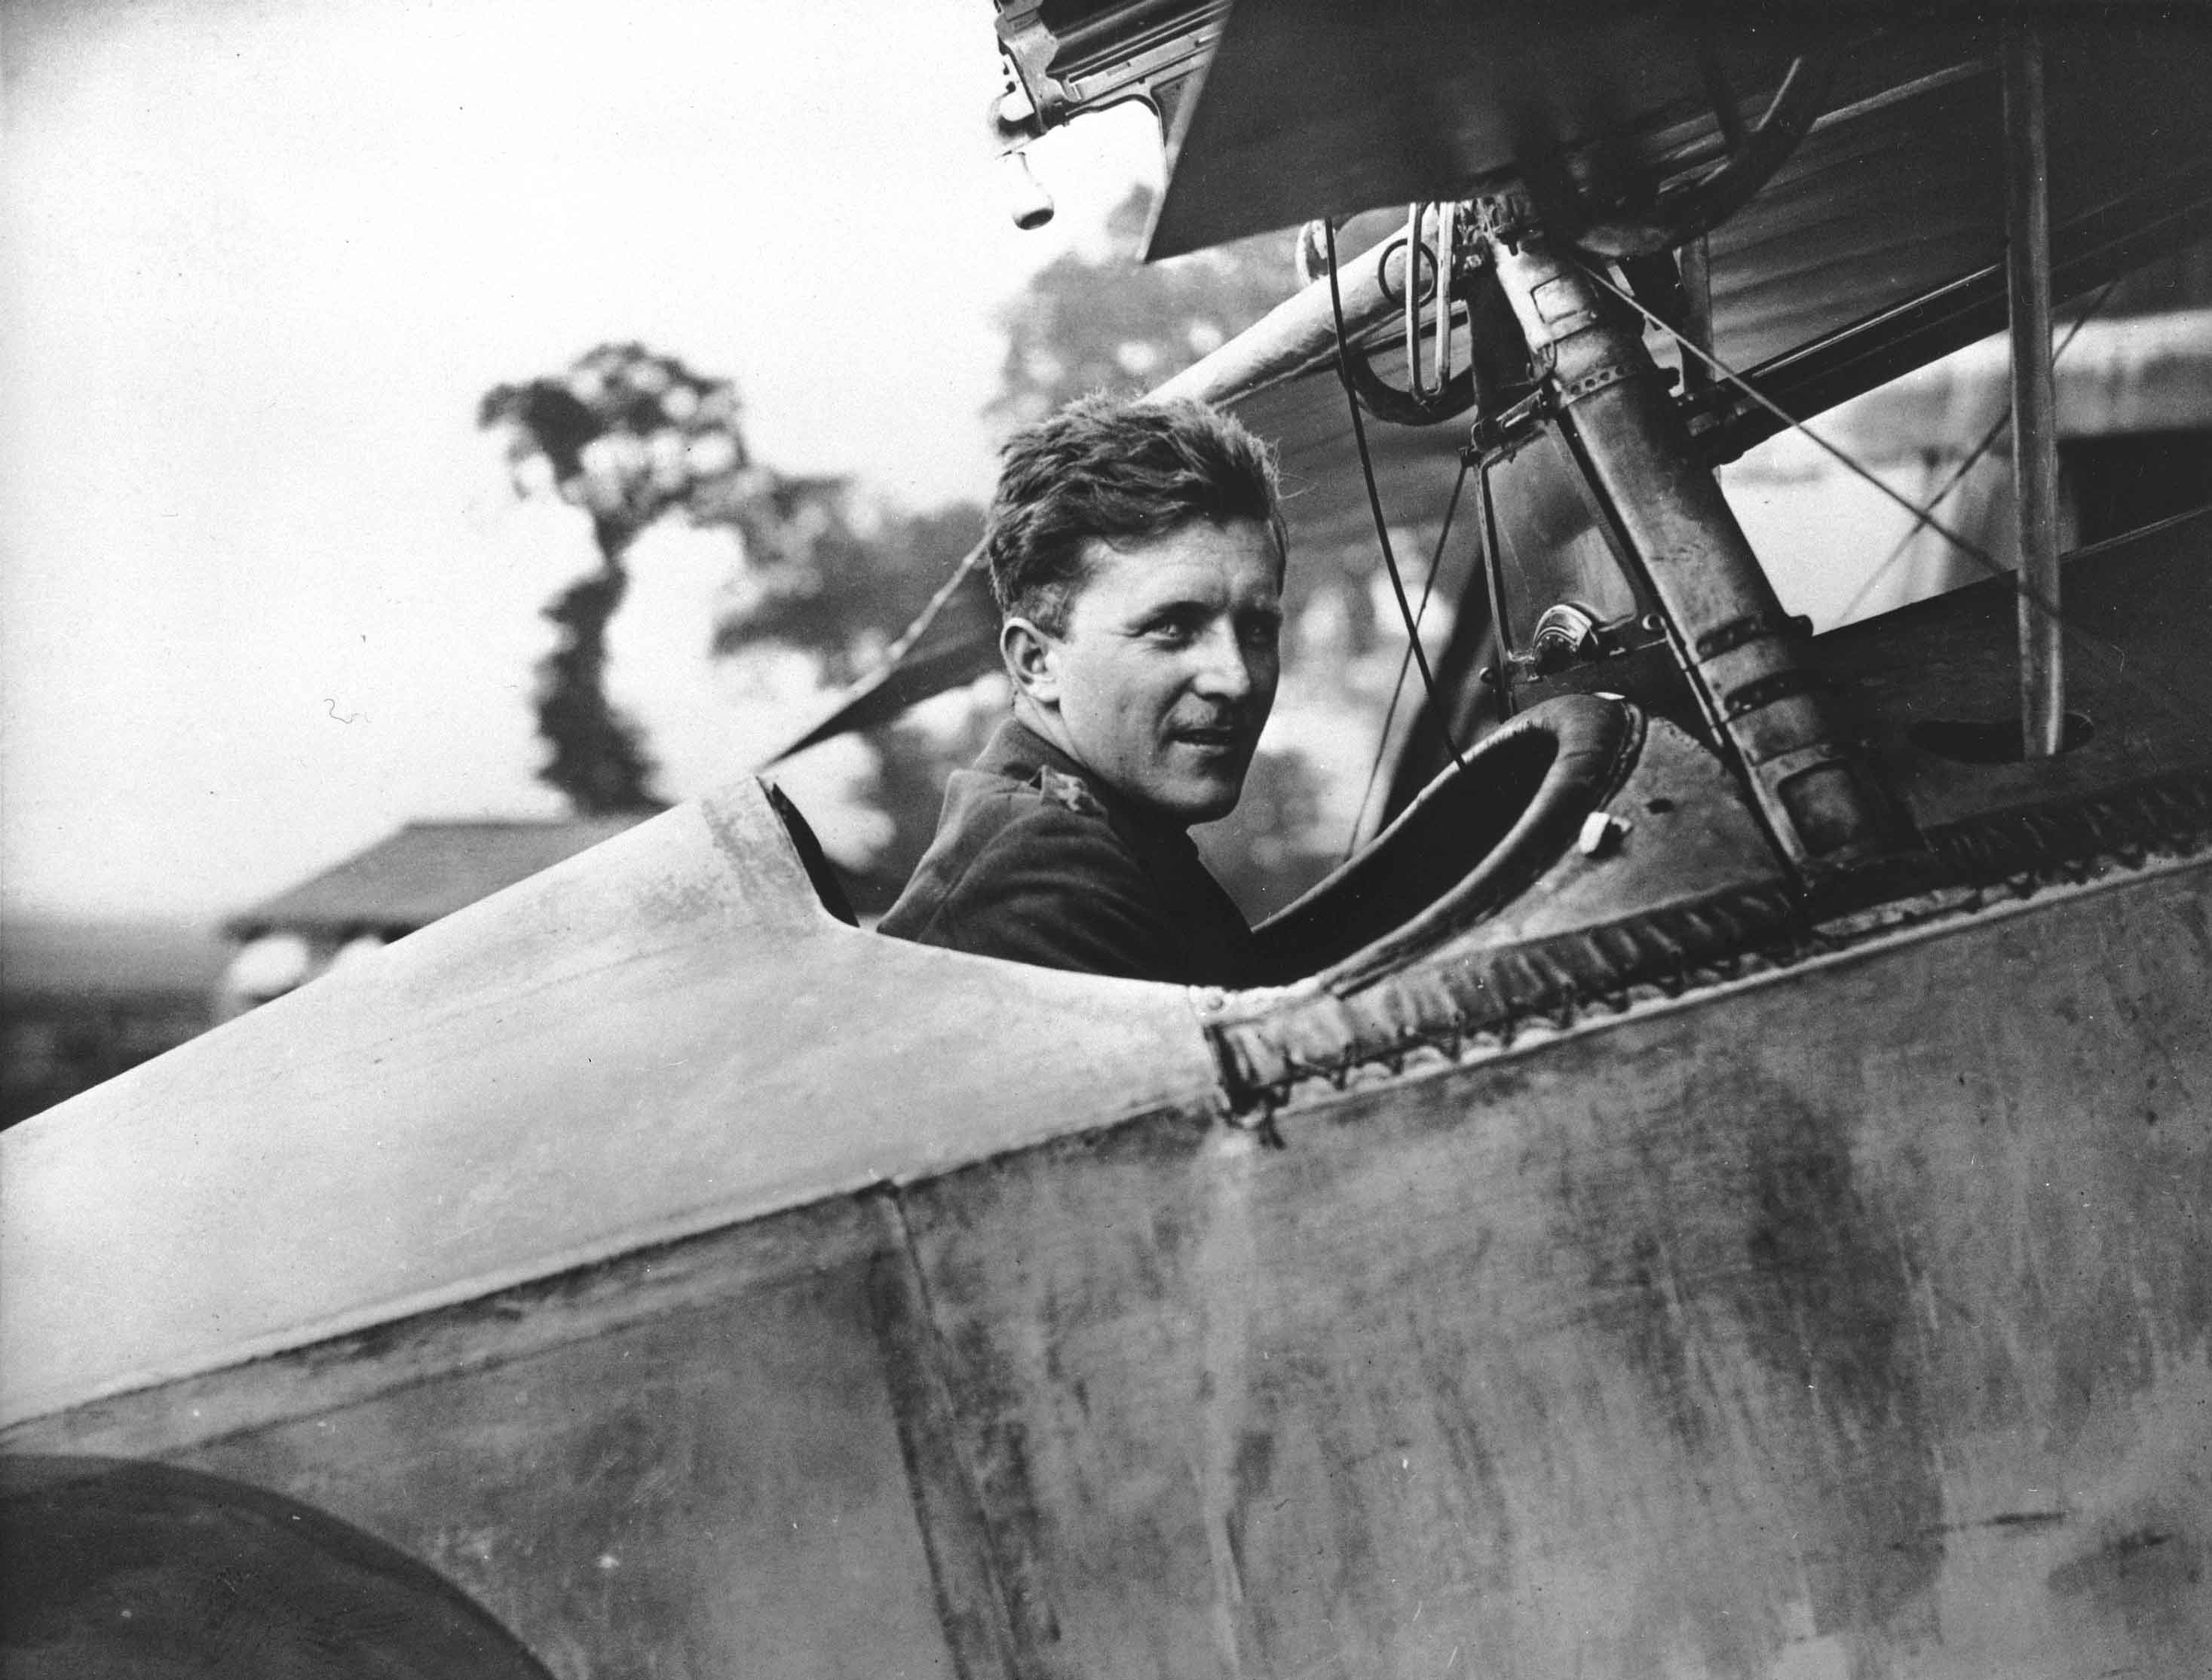 William �Billy� Bishop, 1914-1918